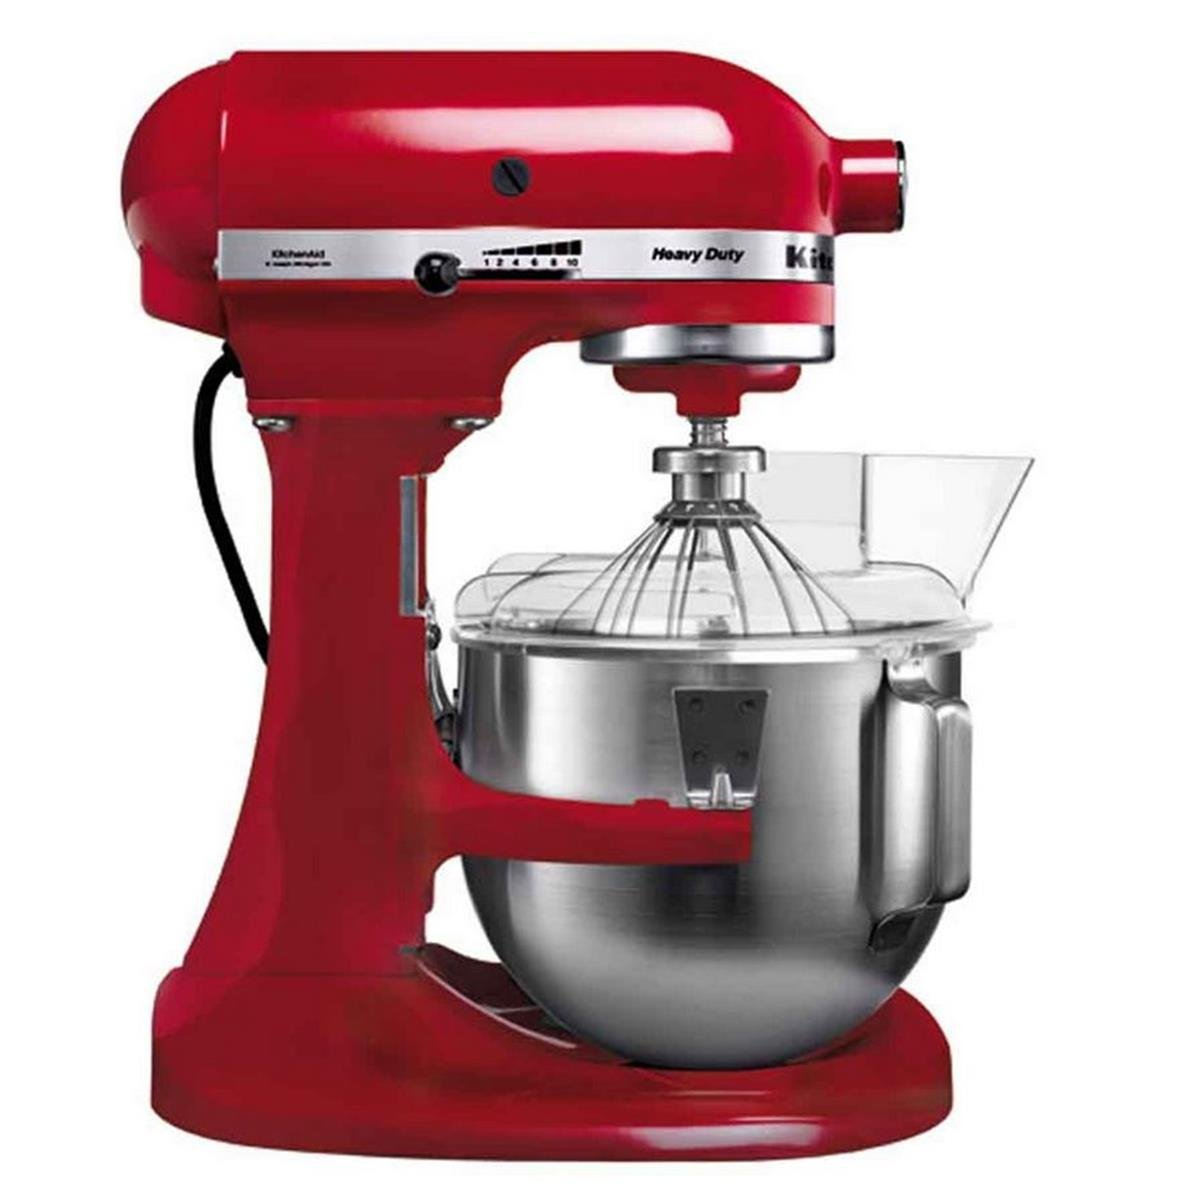 kitchenaid-heavy-duty-5kpm5-cerveny